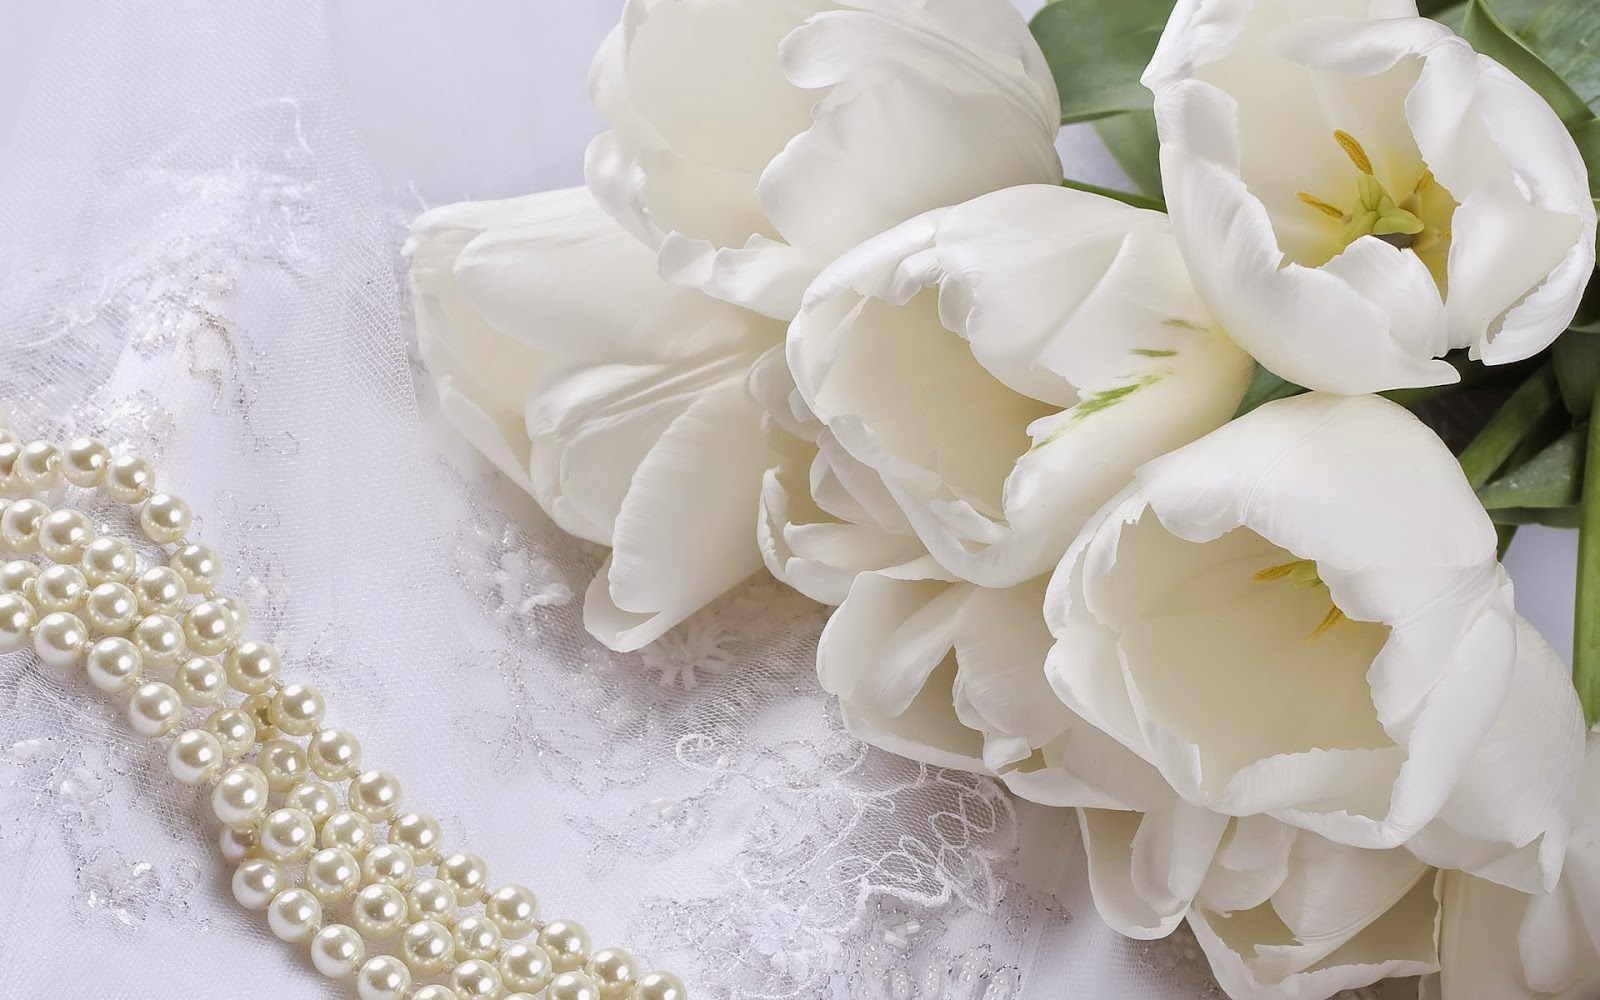 Hd wallpaper top 10 most beautiful flower wallpaper white flower hd pictures izmirmasajfo Image collections